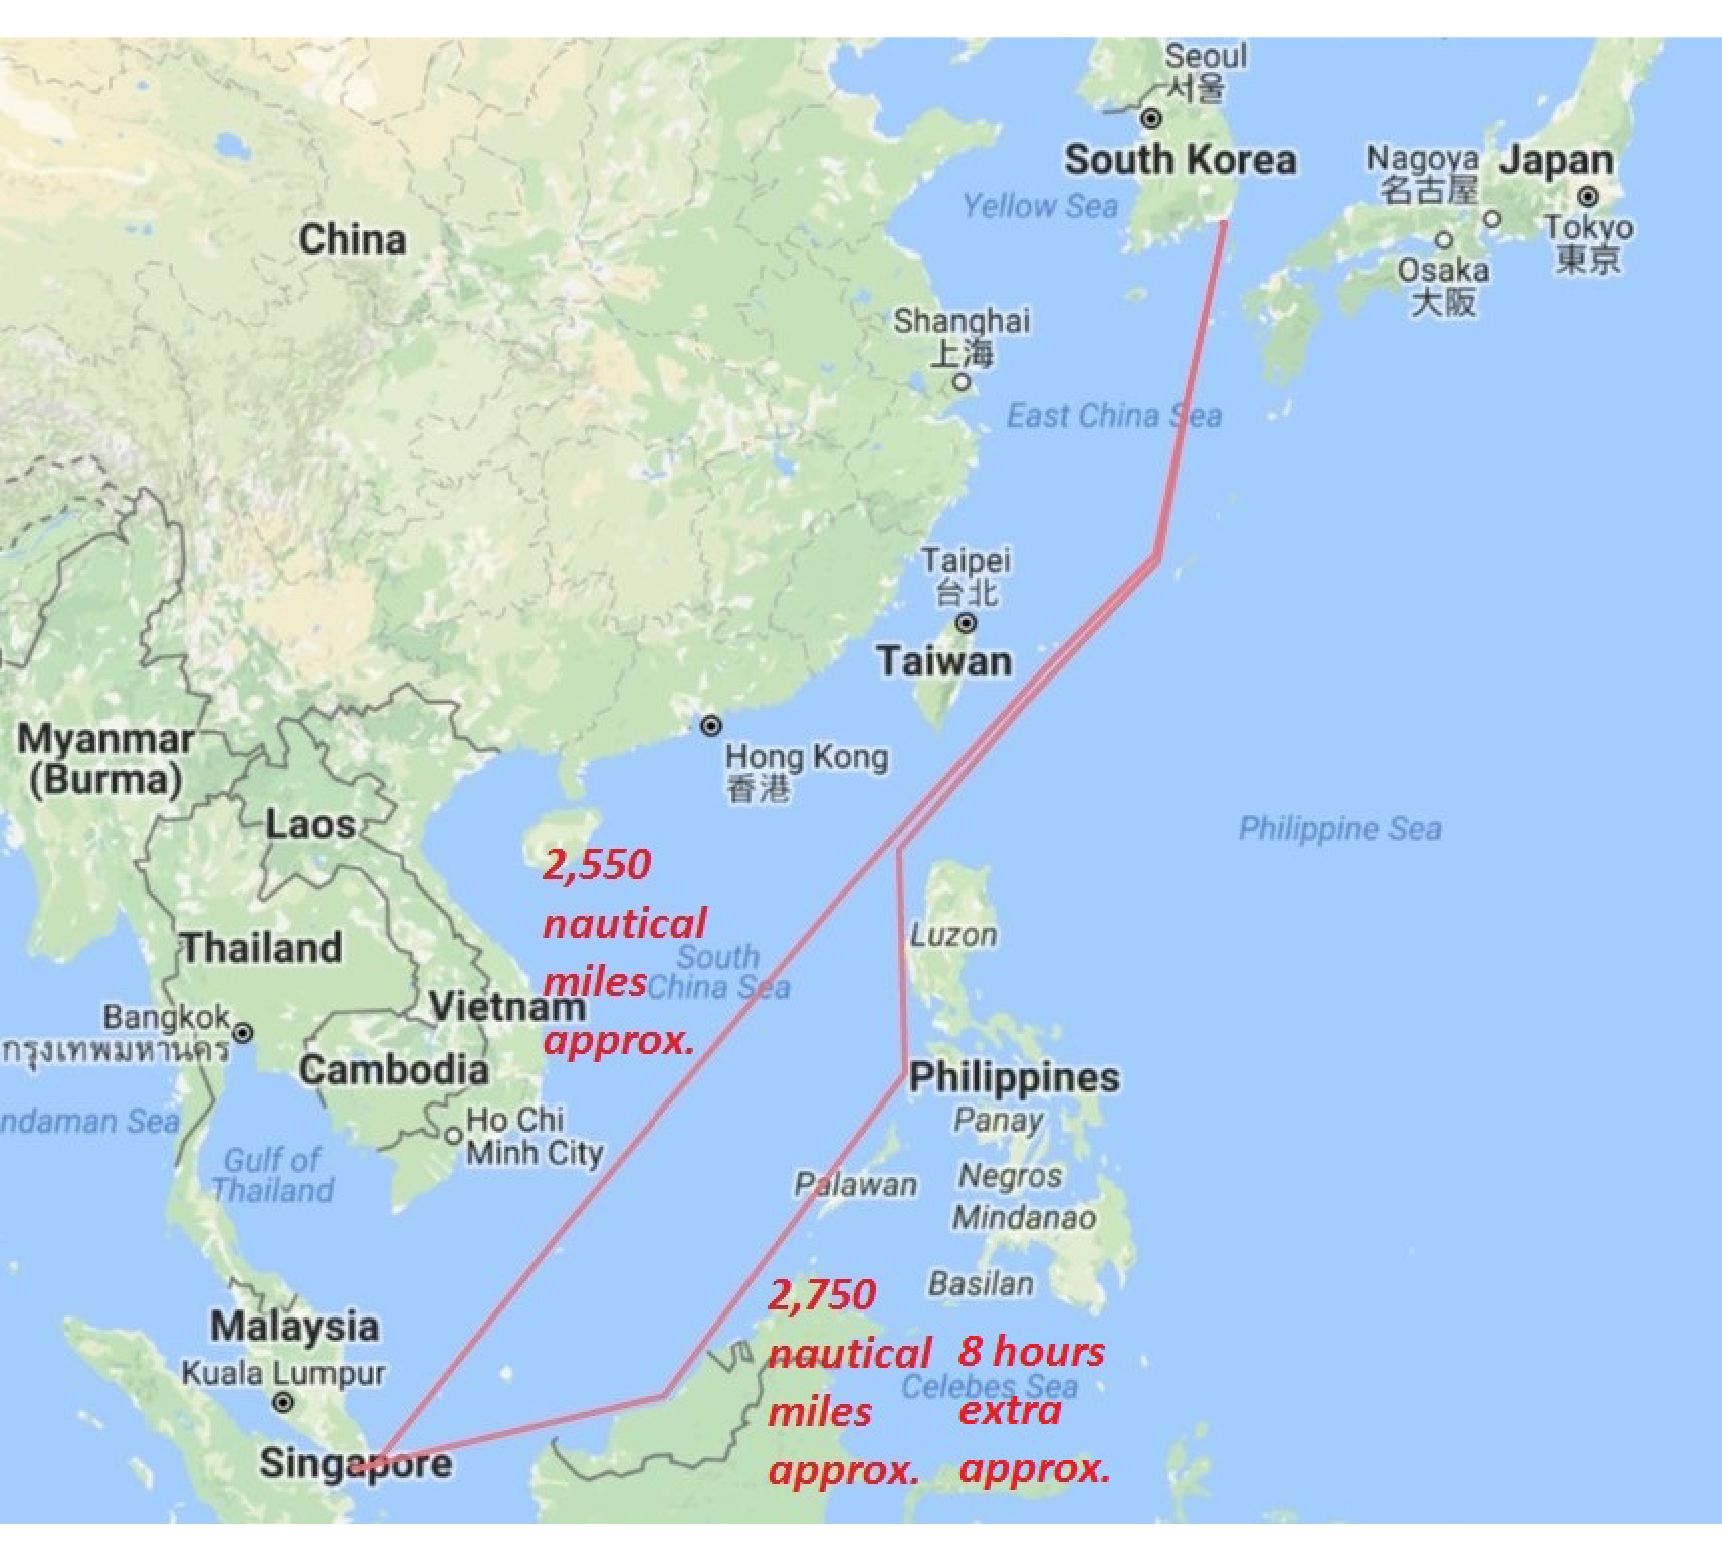 A Balanced Threat Assessment of China's South China Sea